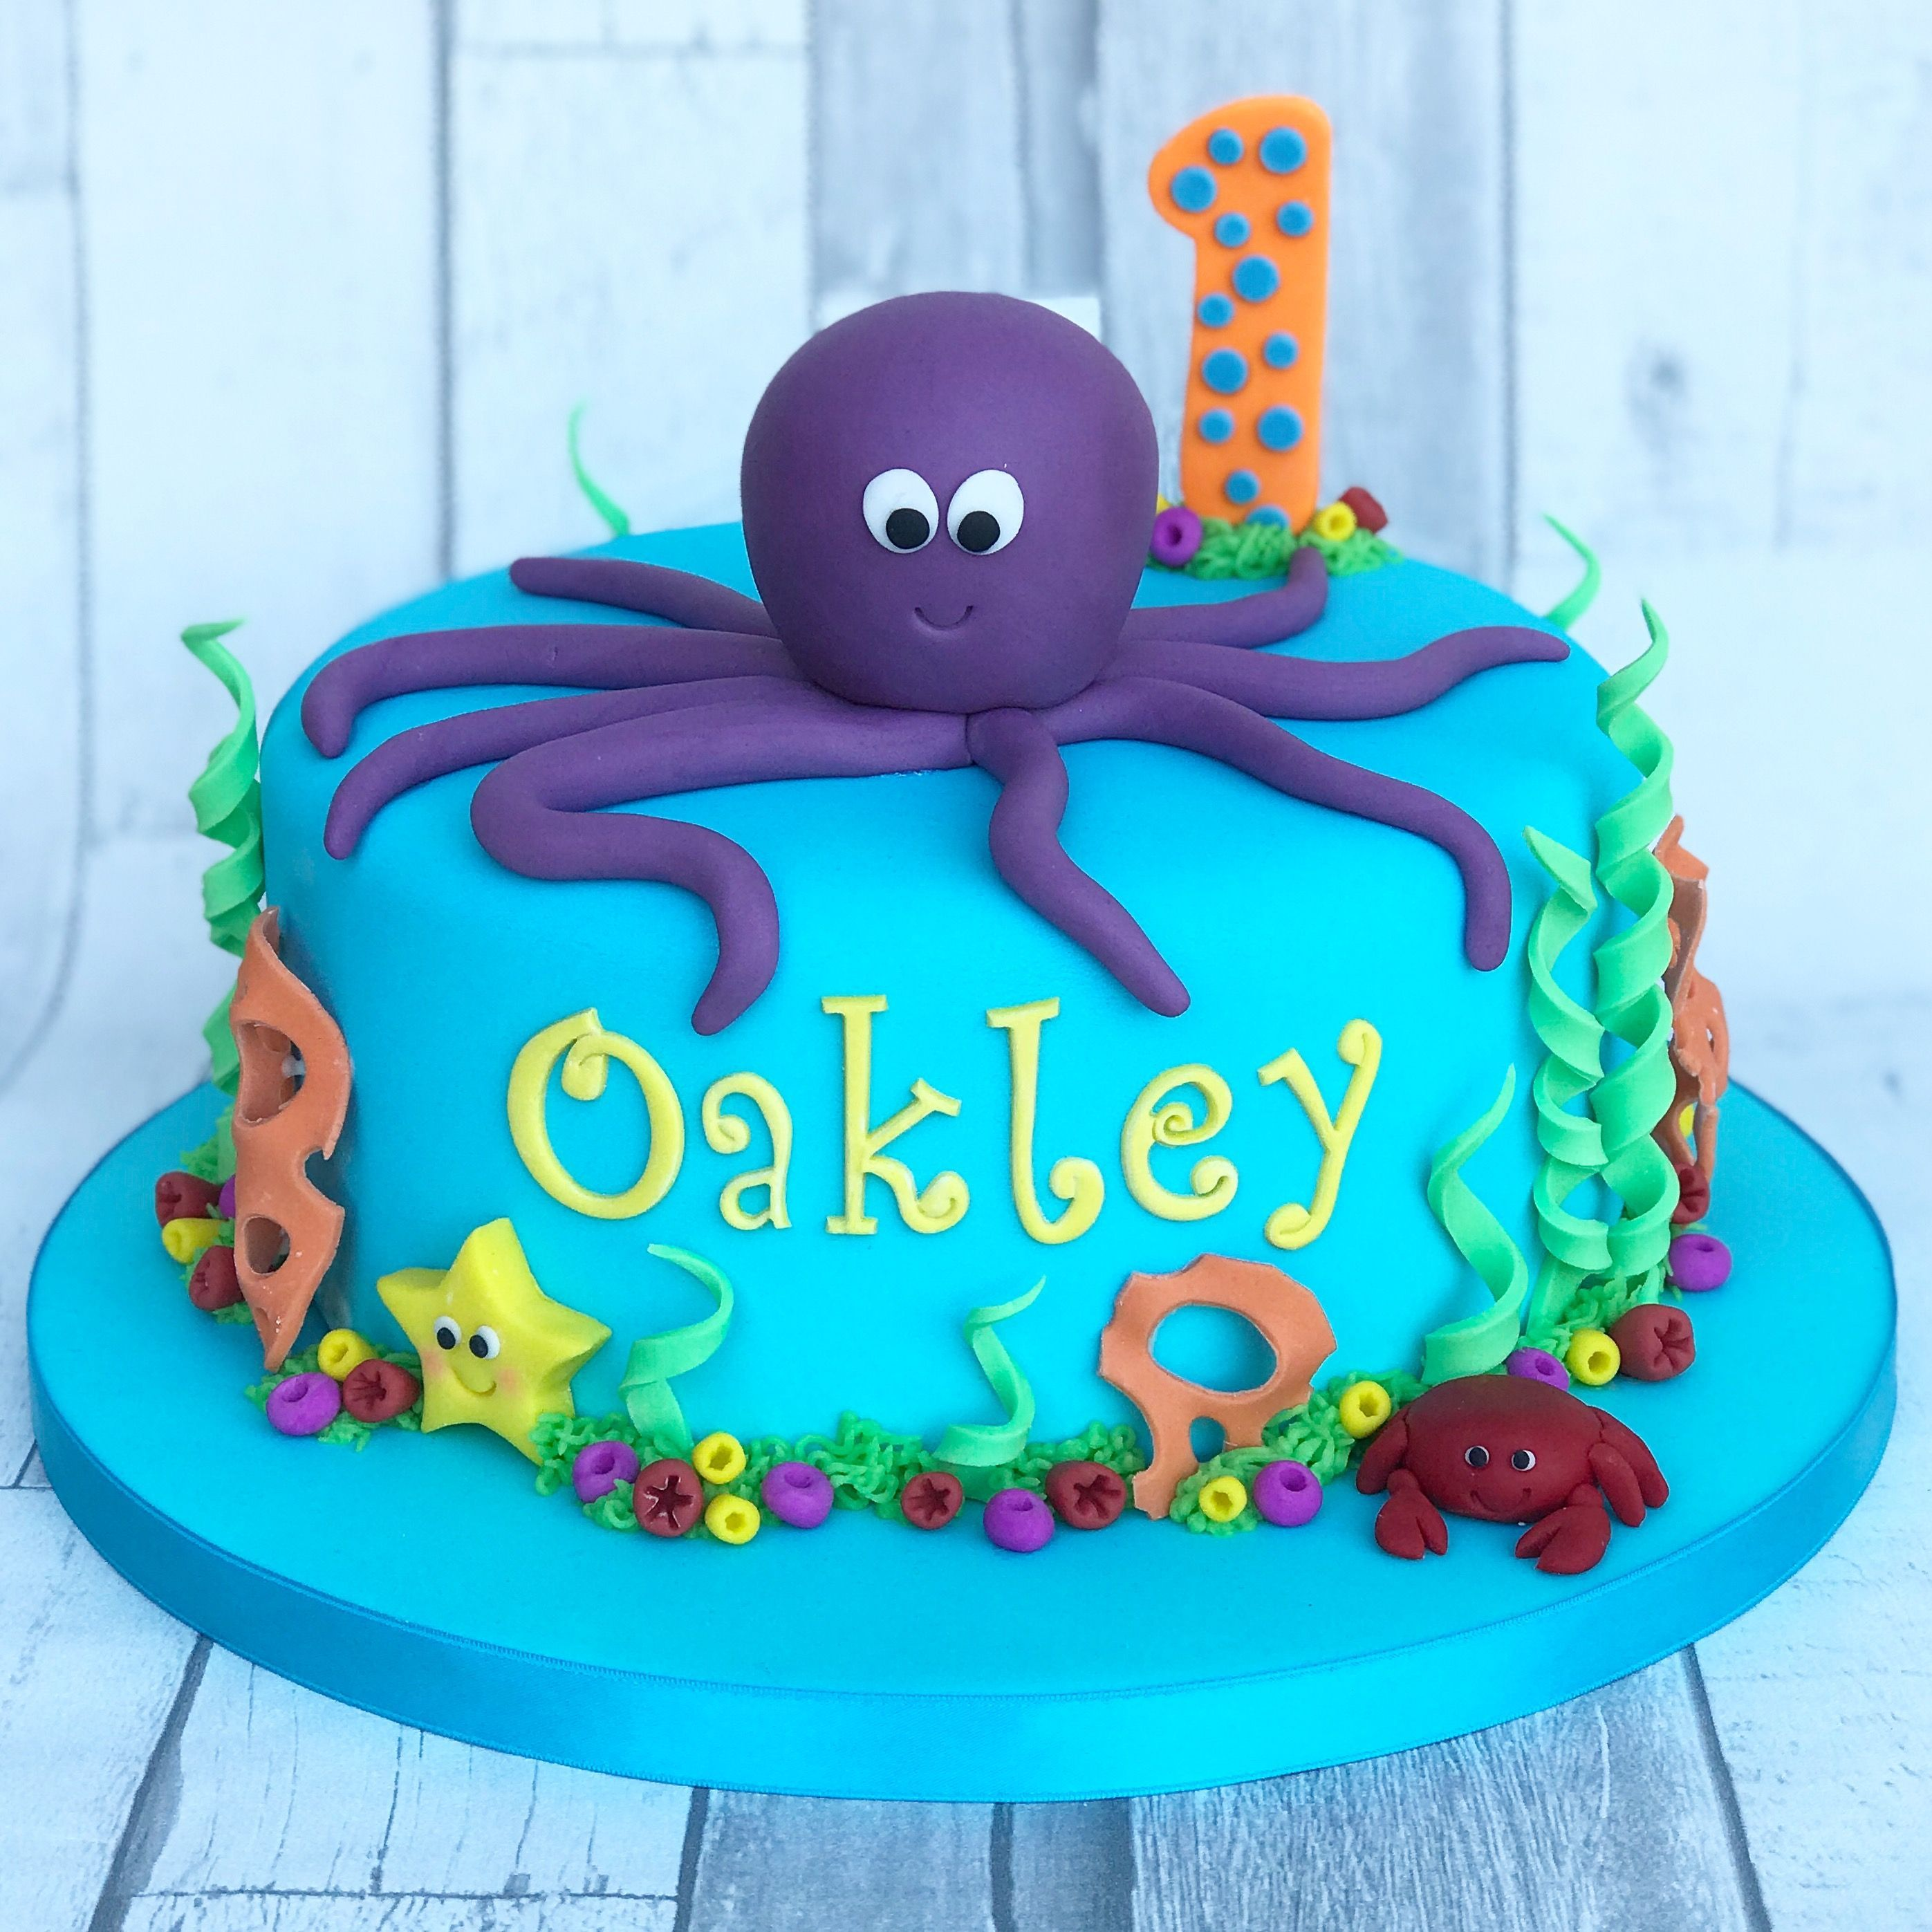 Astonishing A Under The Sea Cake Complete With Purple Octopus Crab Star Fish Funny Birthday Cards Online Eattedamsfinfo